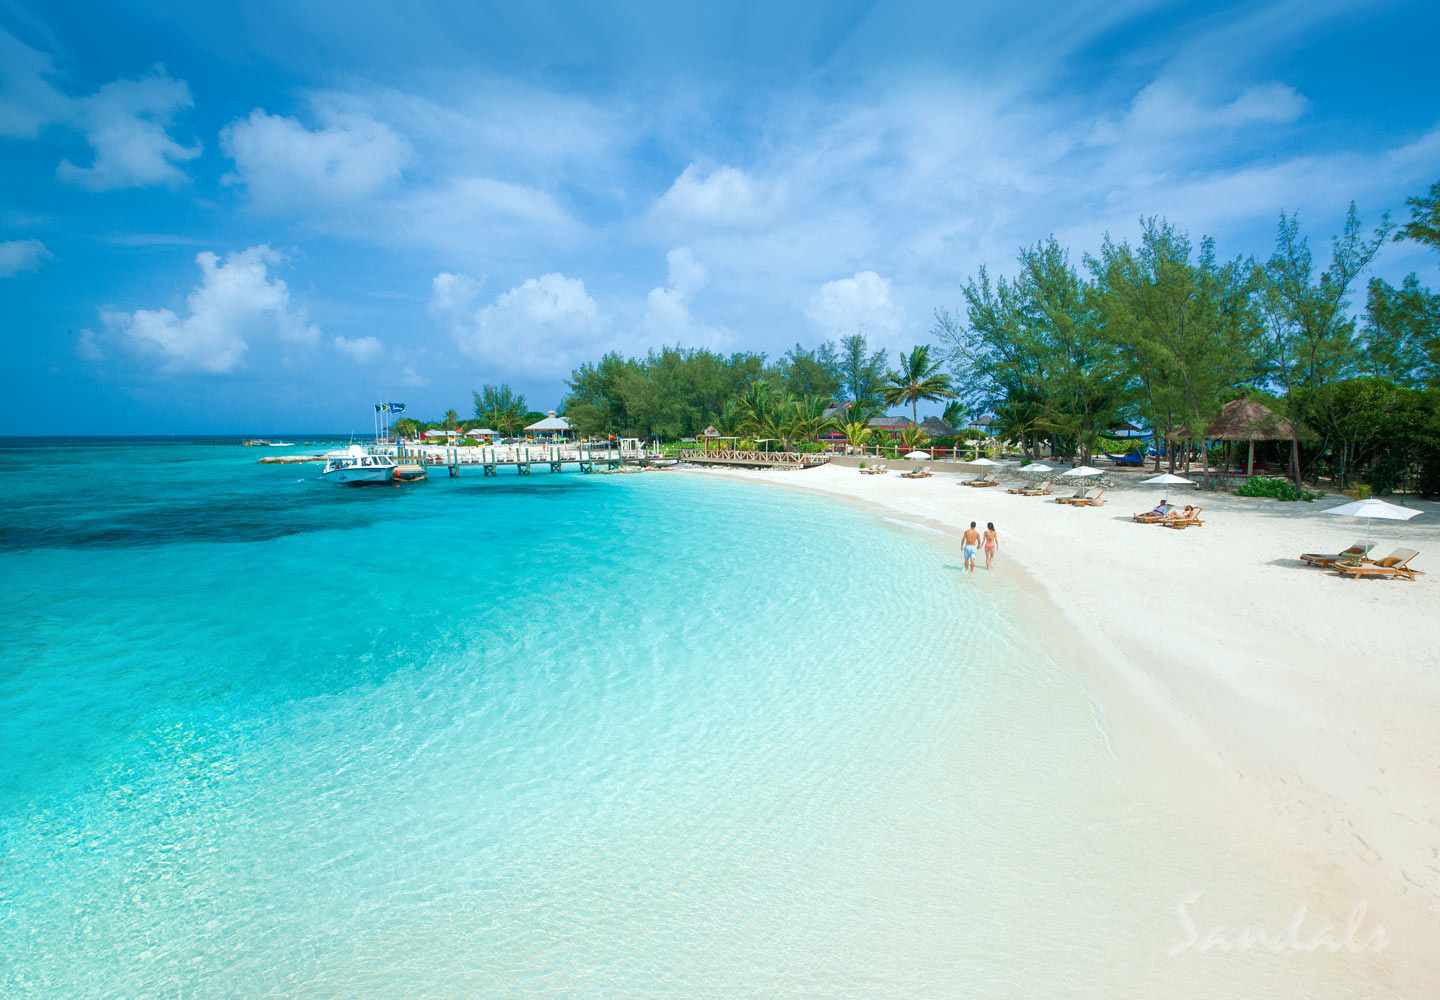 Travel Agency All-Inclusive Resort Sandals Royal Bahamian 012